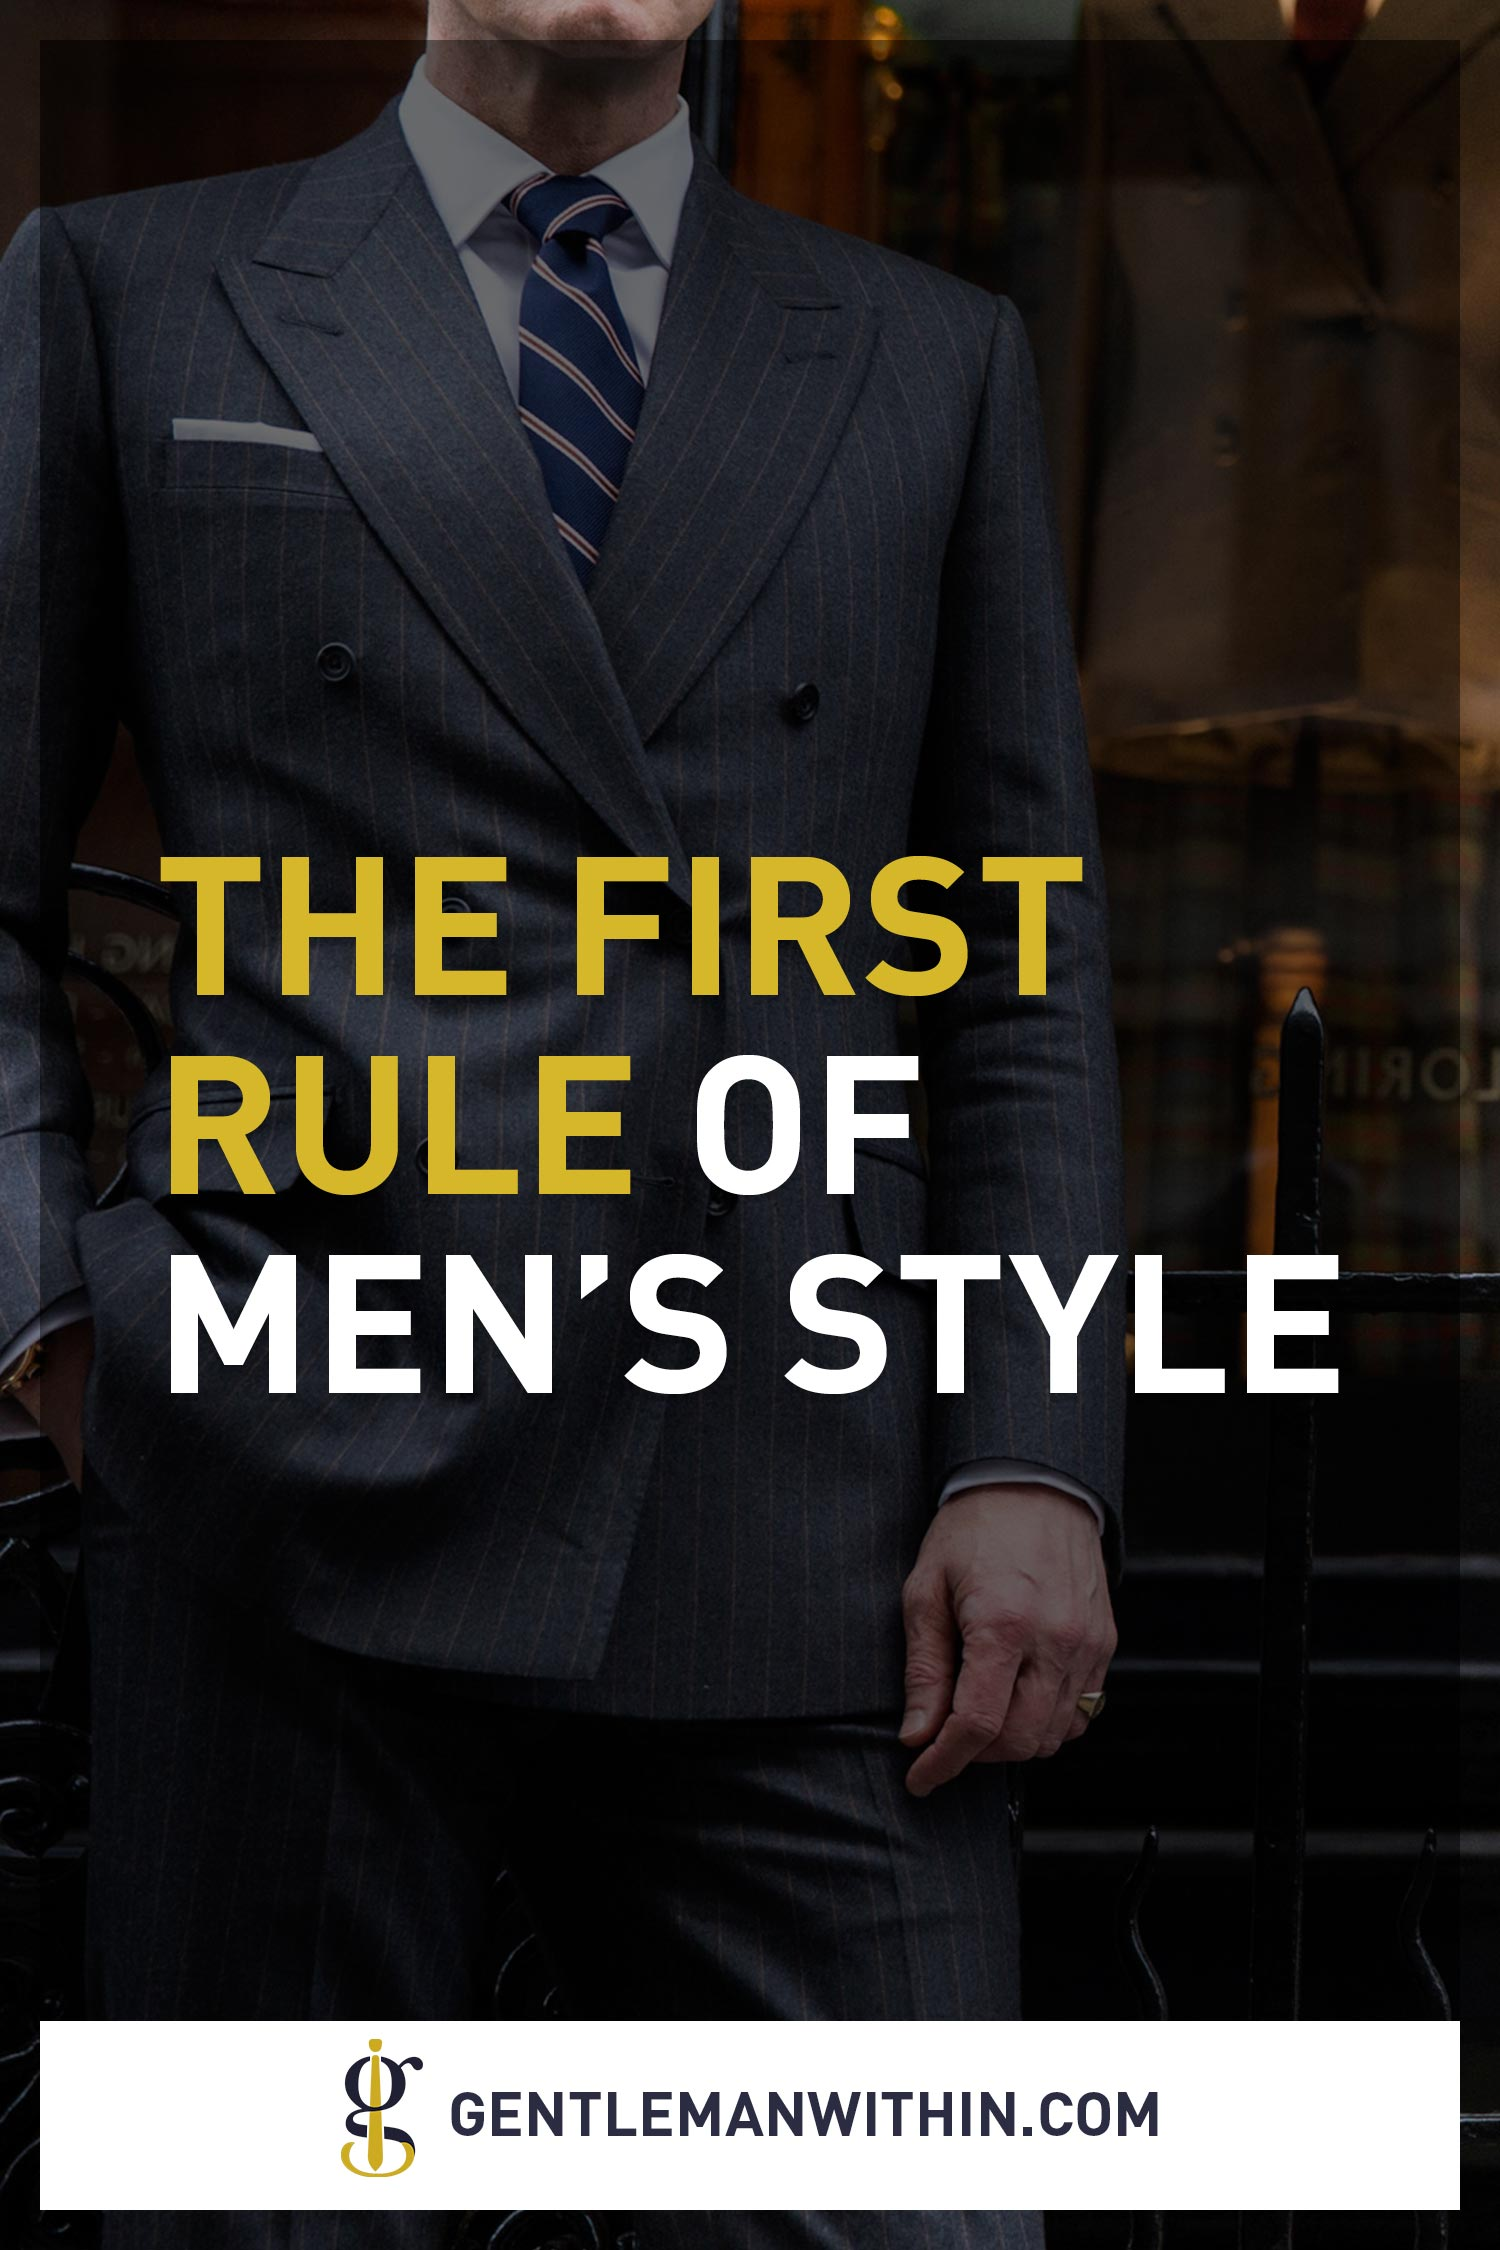 The First Rule of Men's Style (That You Don't Want to Break | Gentleman Within